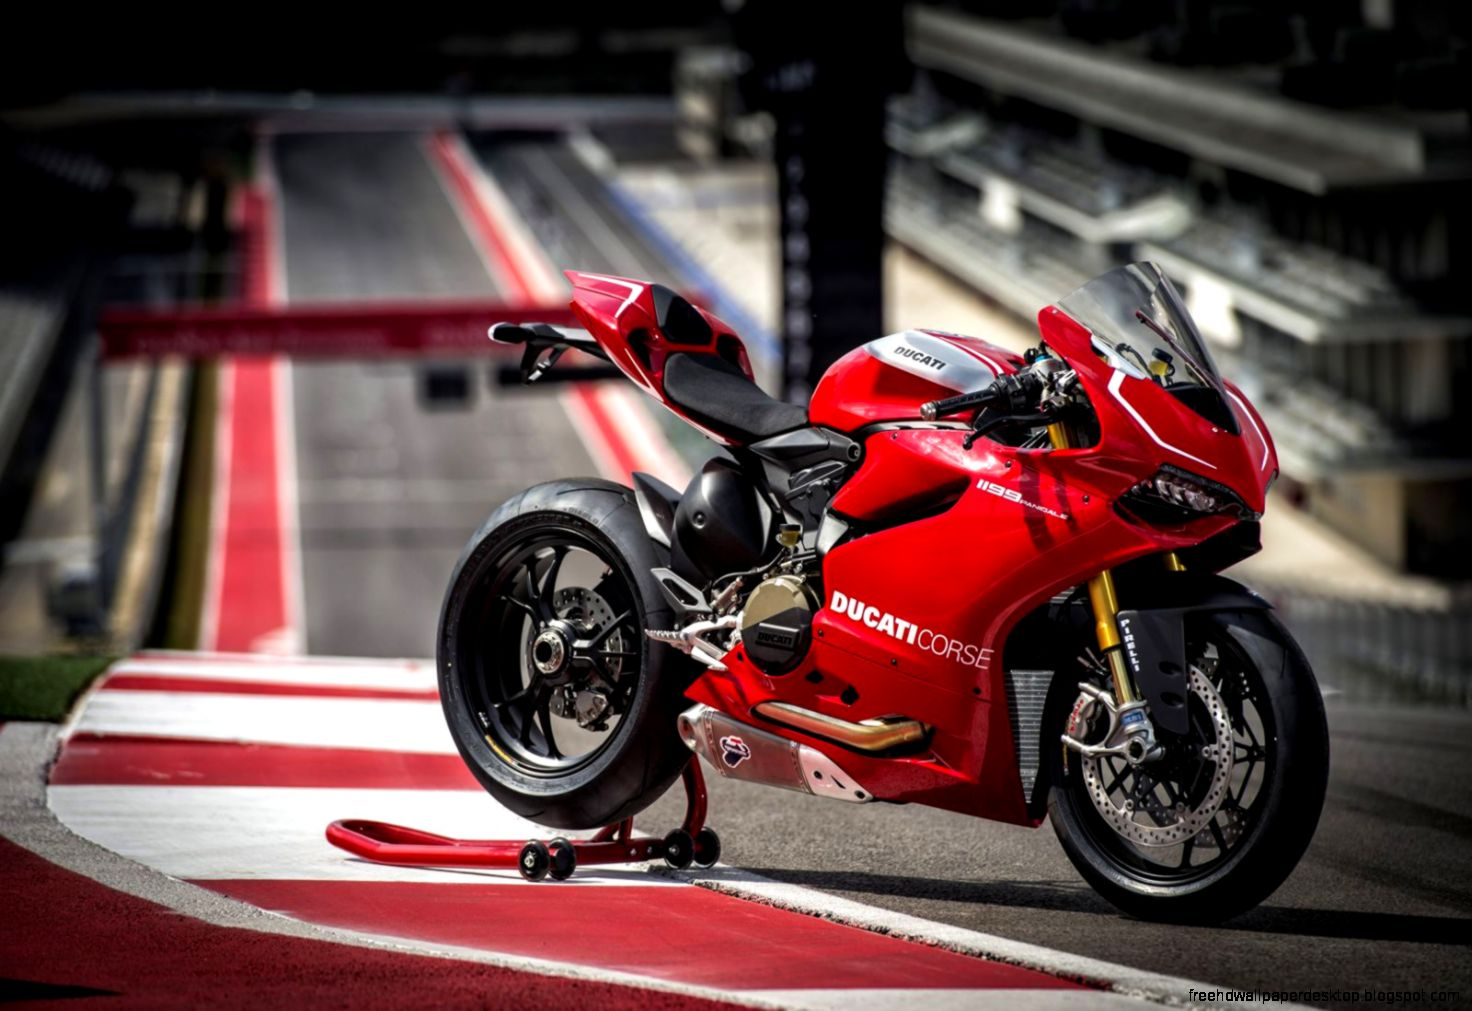 Ducati Superbike 1199 Panigale S Spesification Wallpaper Wide   Free High Definition Wallpapers